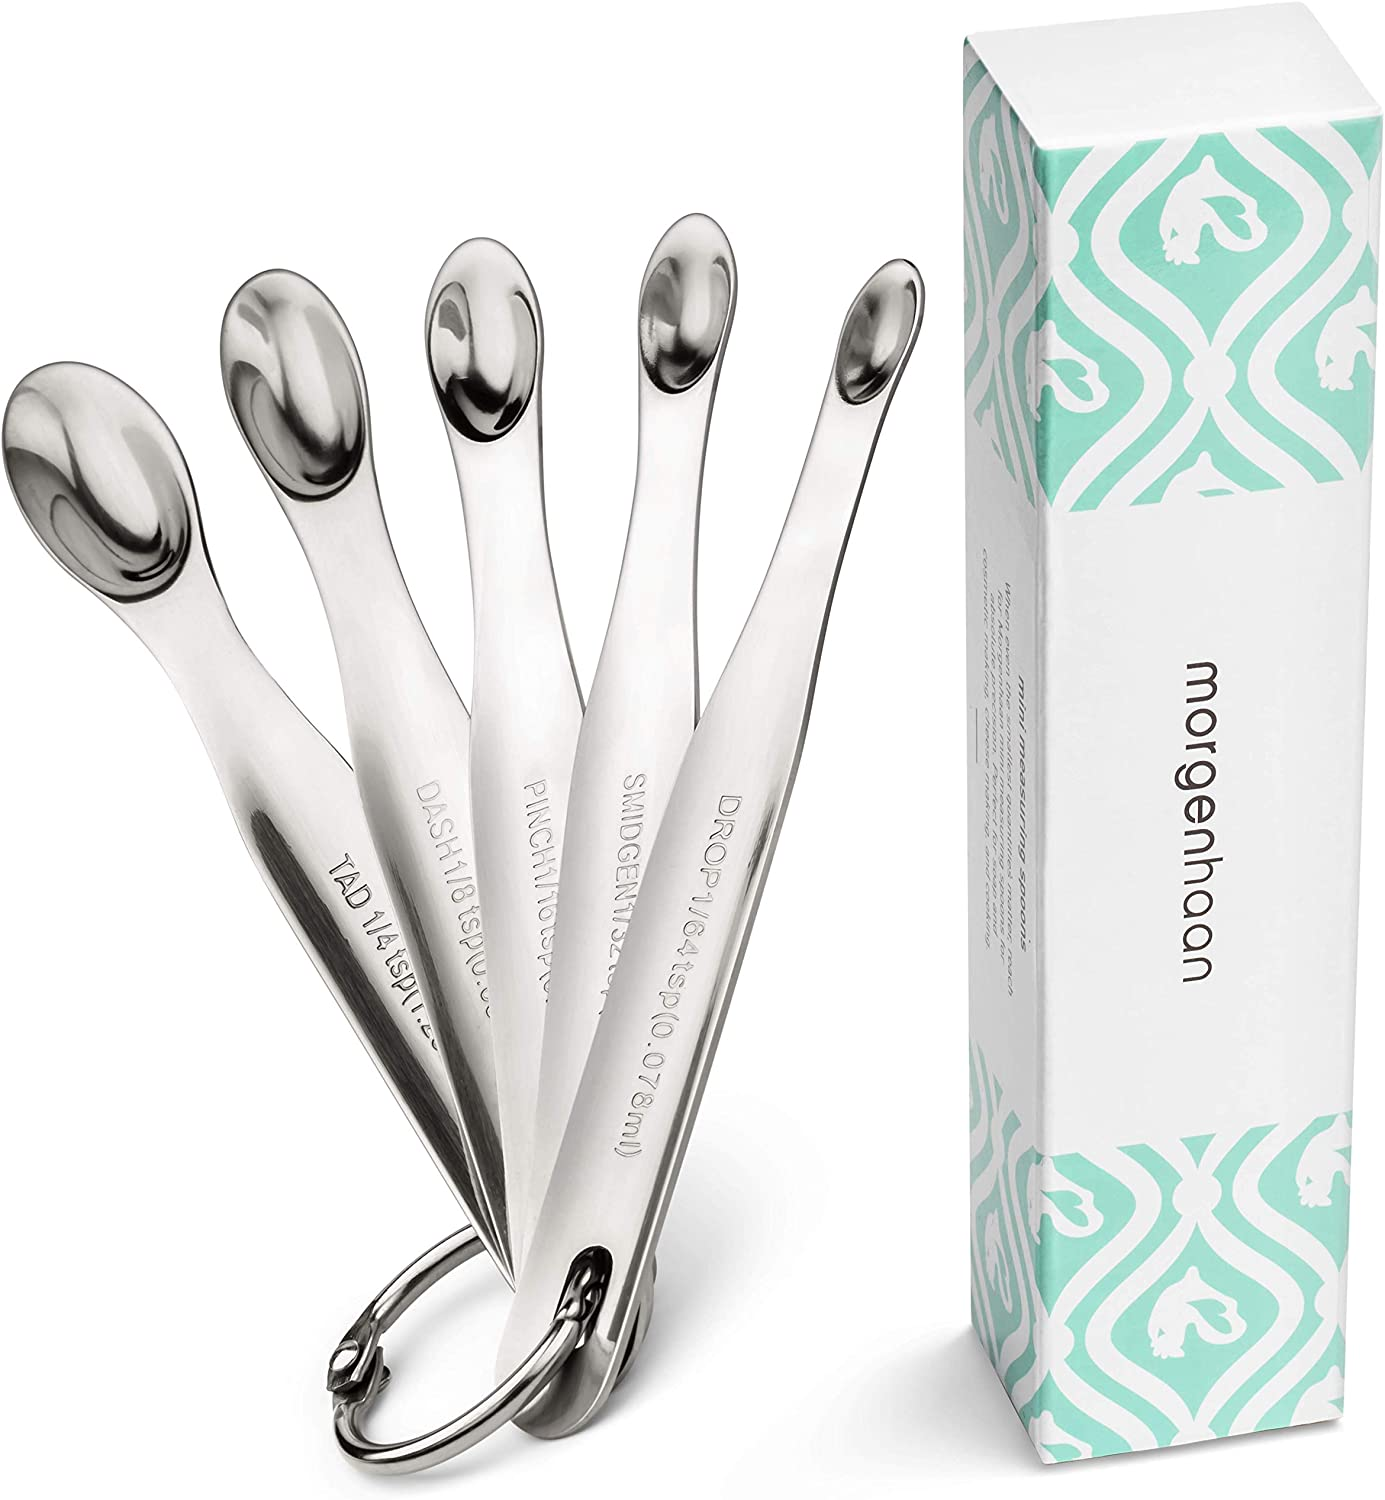 Morgenhaan Stainless Steel Mini Measuring Spoons, Set of 5 Pieces